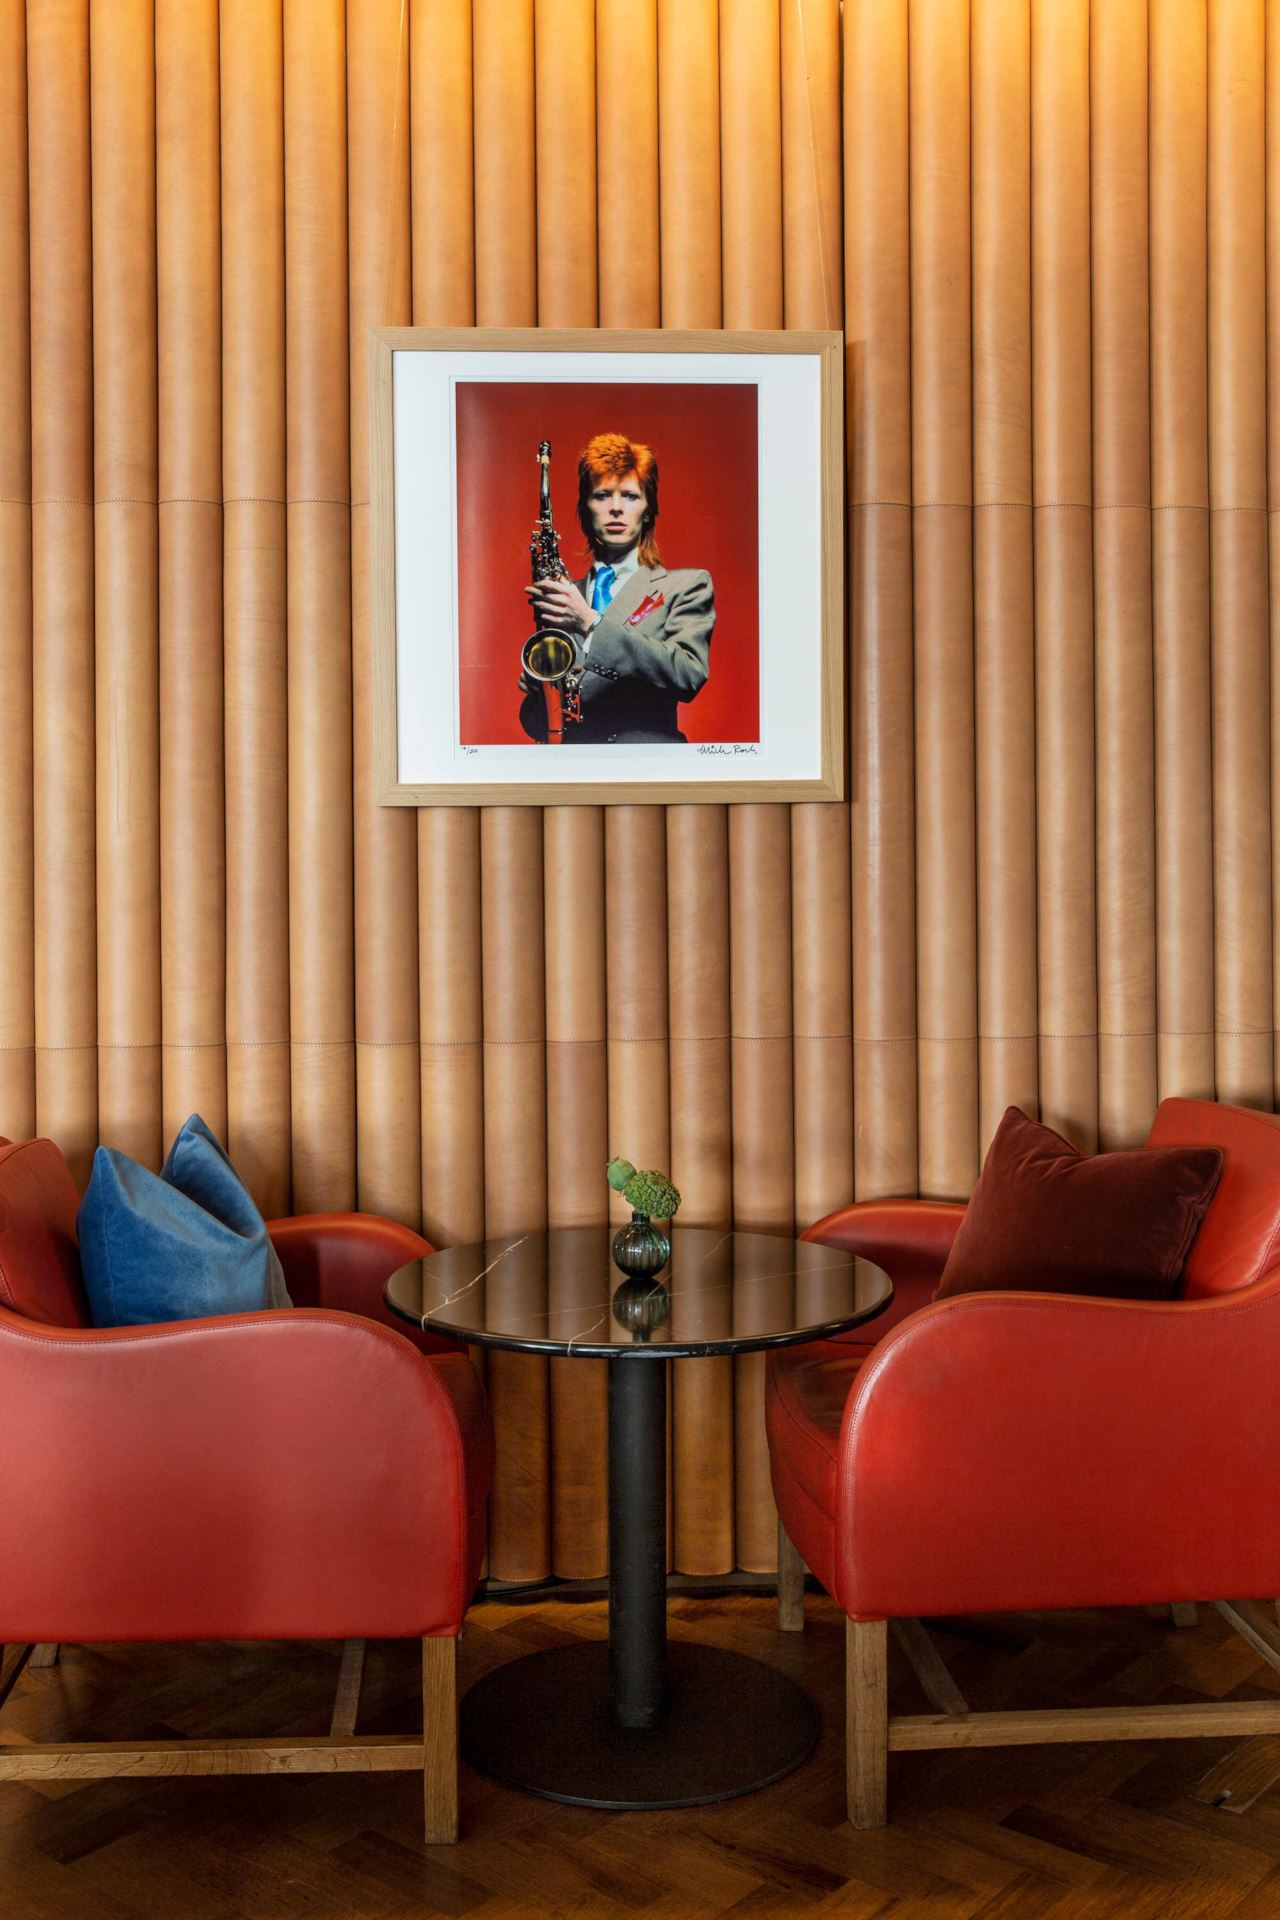 Design Per Tutti Com ziggy's in london is the bar dedicated to david bowie